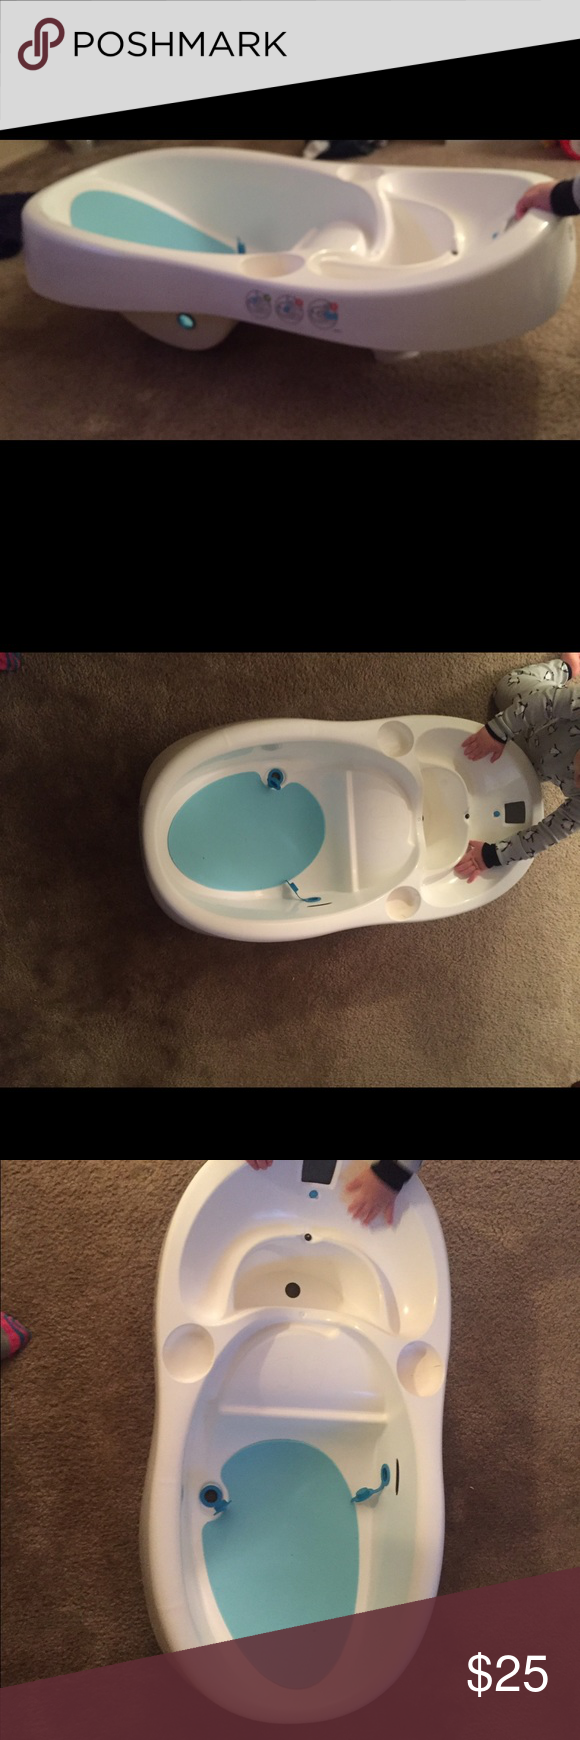 4moms infant bathtub Keep your baby squeaky clean with the 4moms infant tub, which is designed to allow clean water to flow in while dirty water flows out. A built-in, color-coded thermometer helps make it easy to find a safe and comfortable water temperature. Other